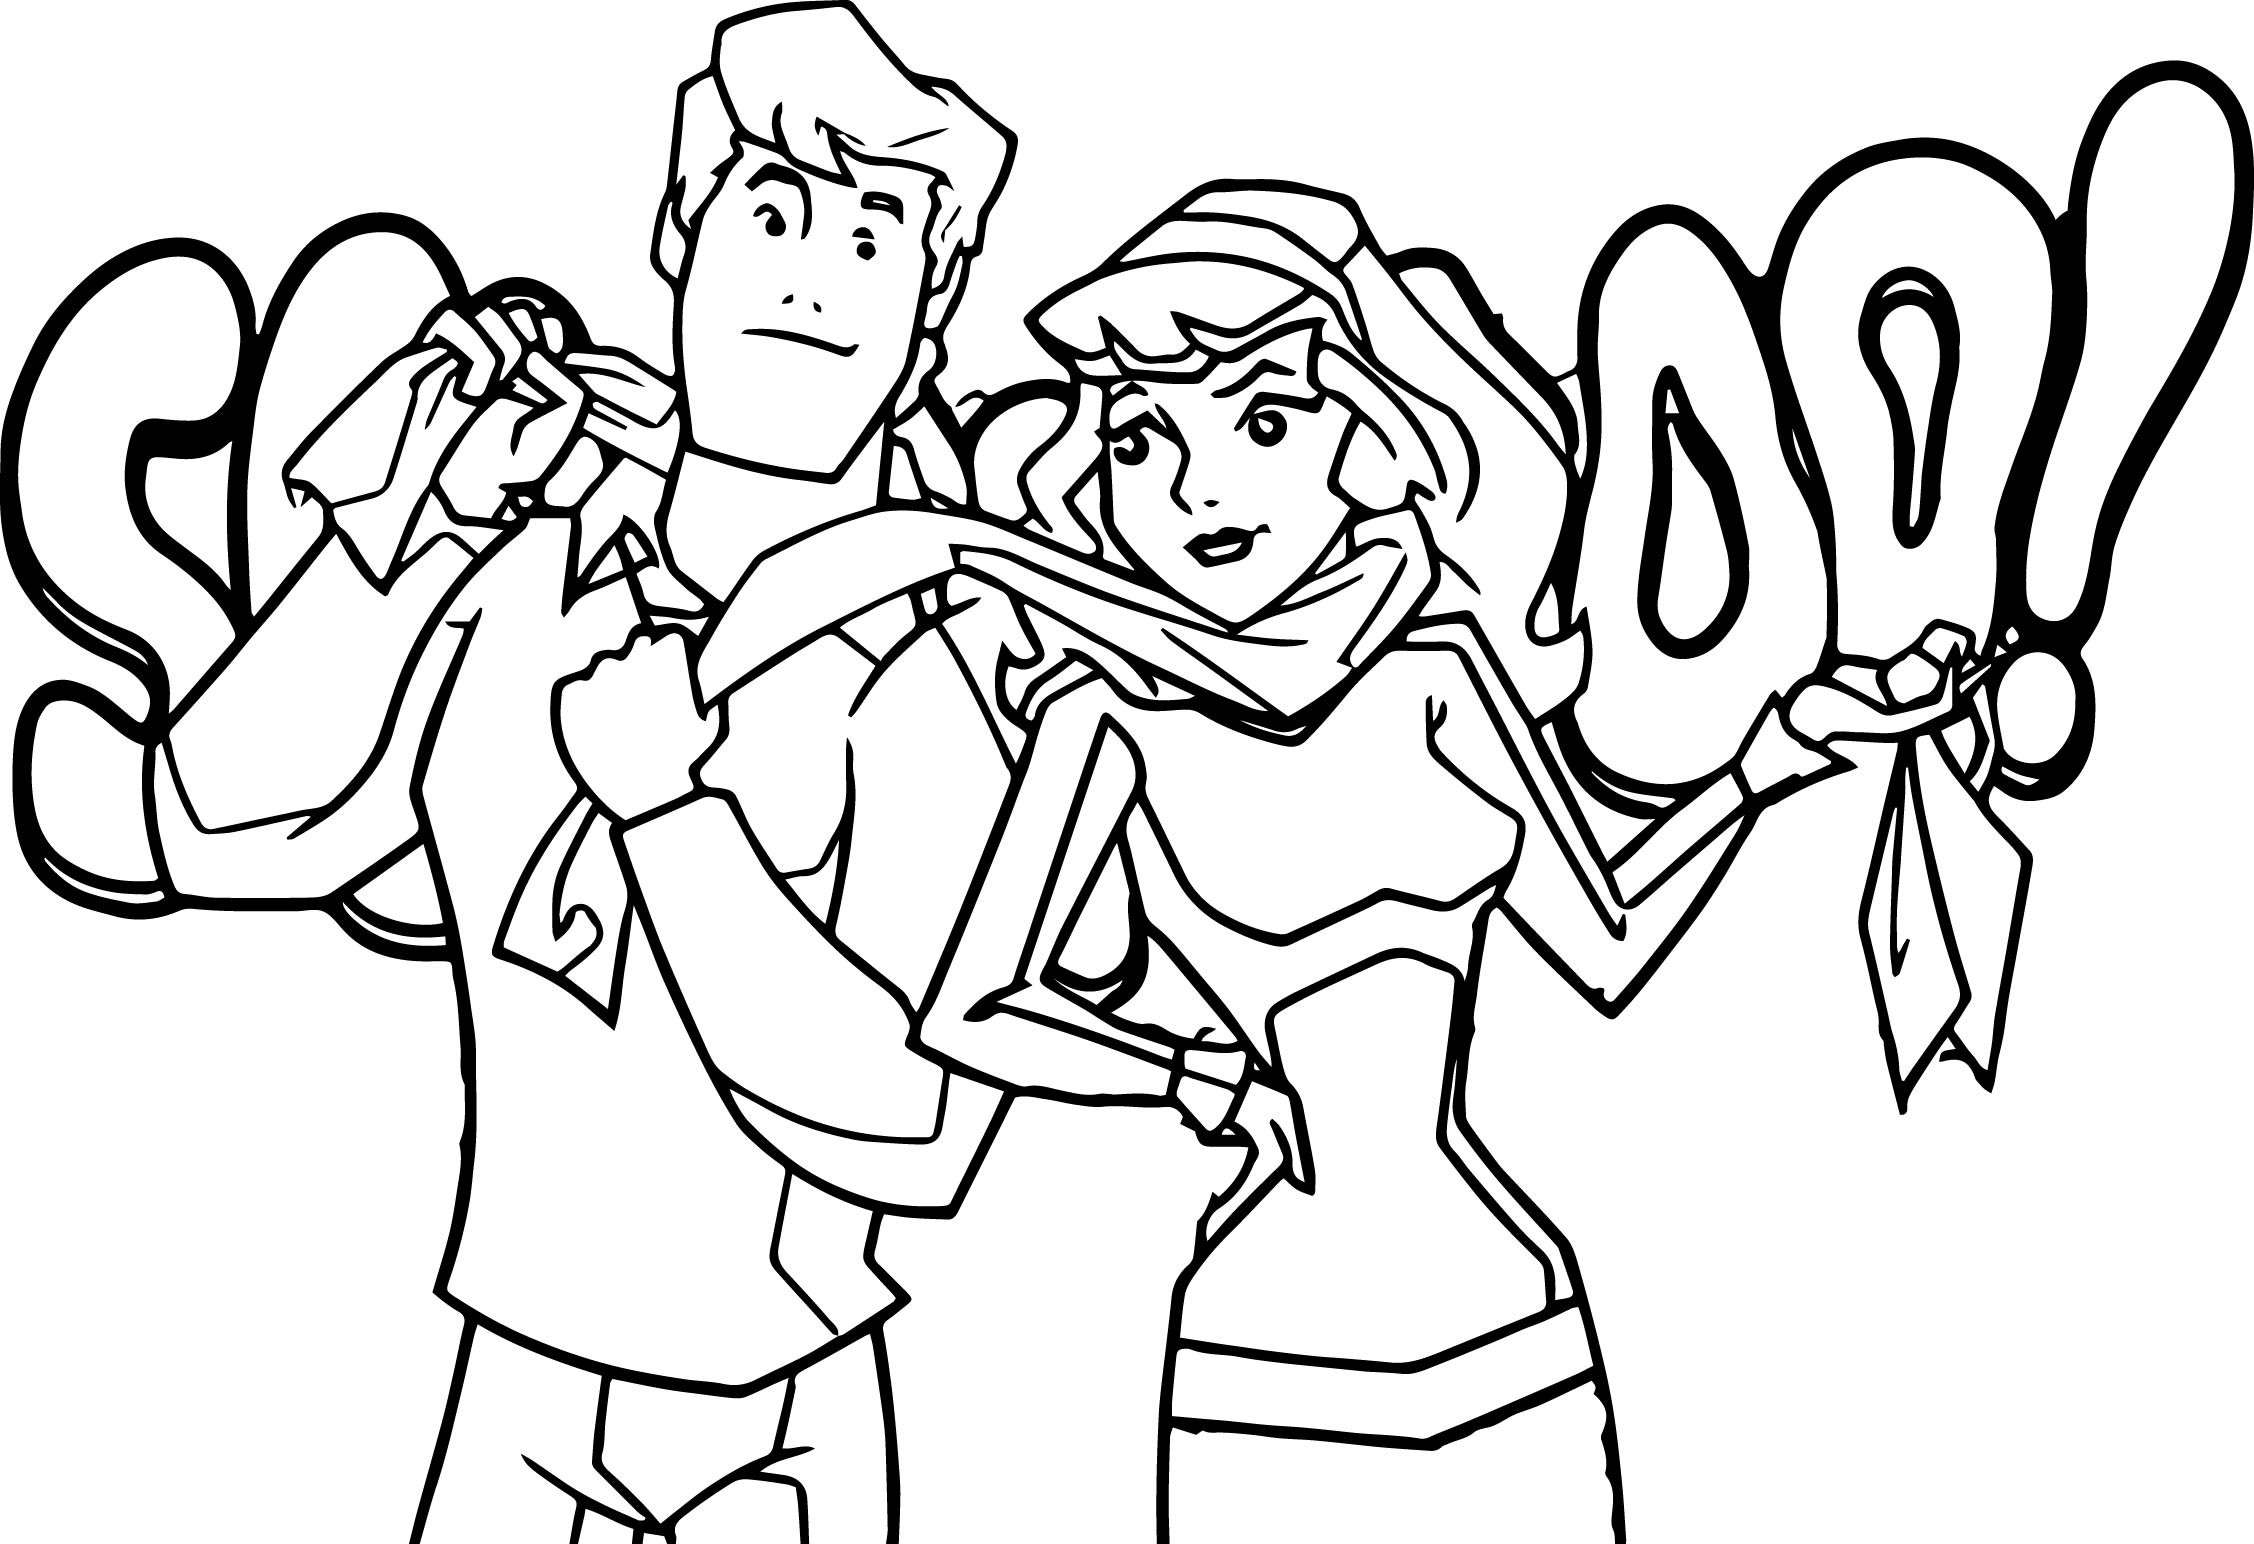 Free Printable Scooby Doo Coloring Pages  Gallery 10g - Free For Children